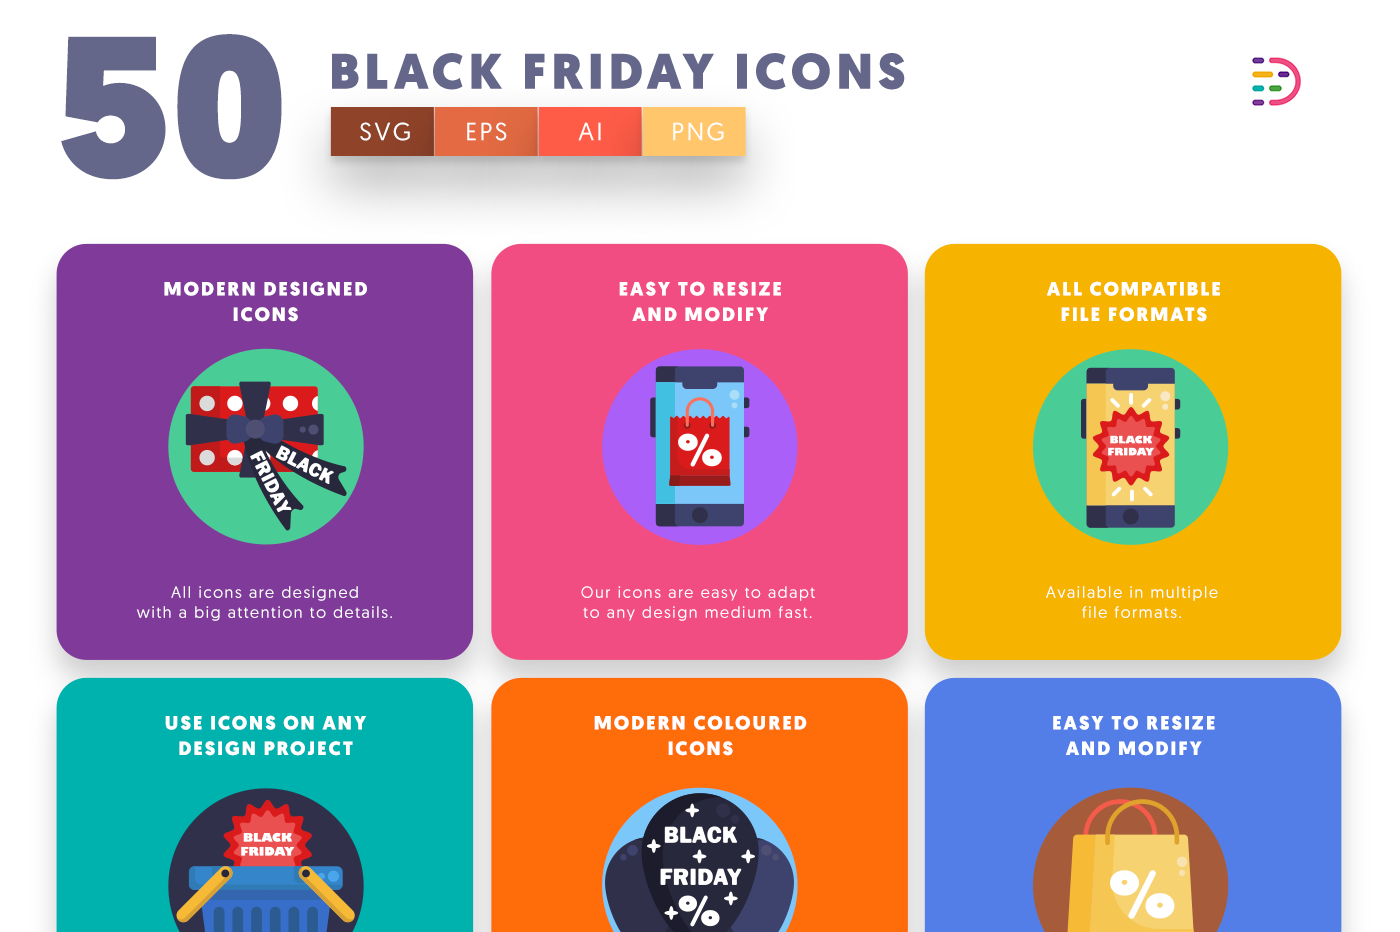 50 Black Friday Icons with colored backgrounds